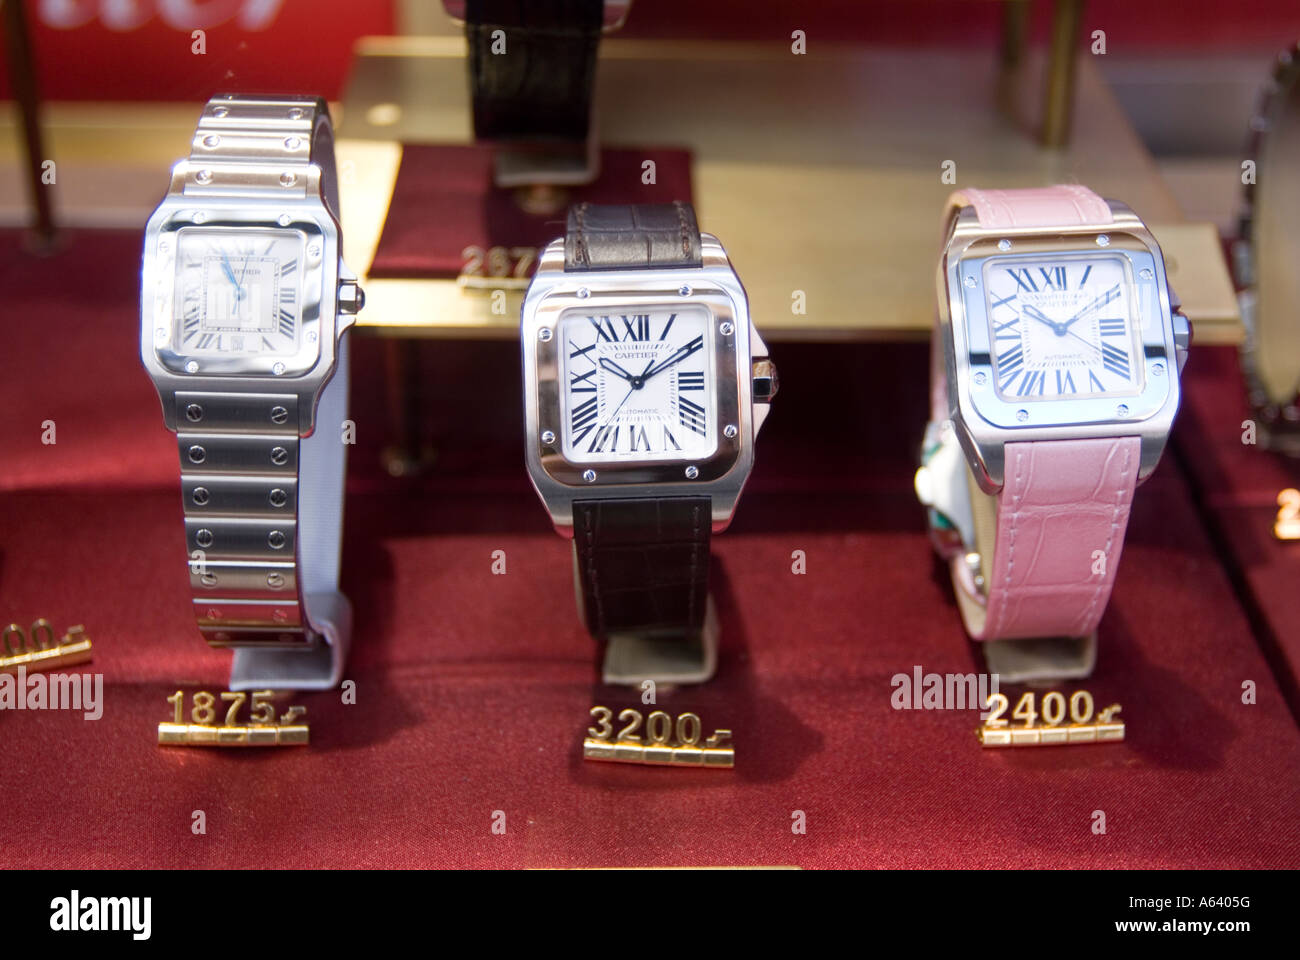 Expensive Cartier watches in shop window display London England UK - Stock Image